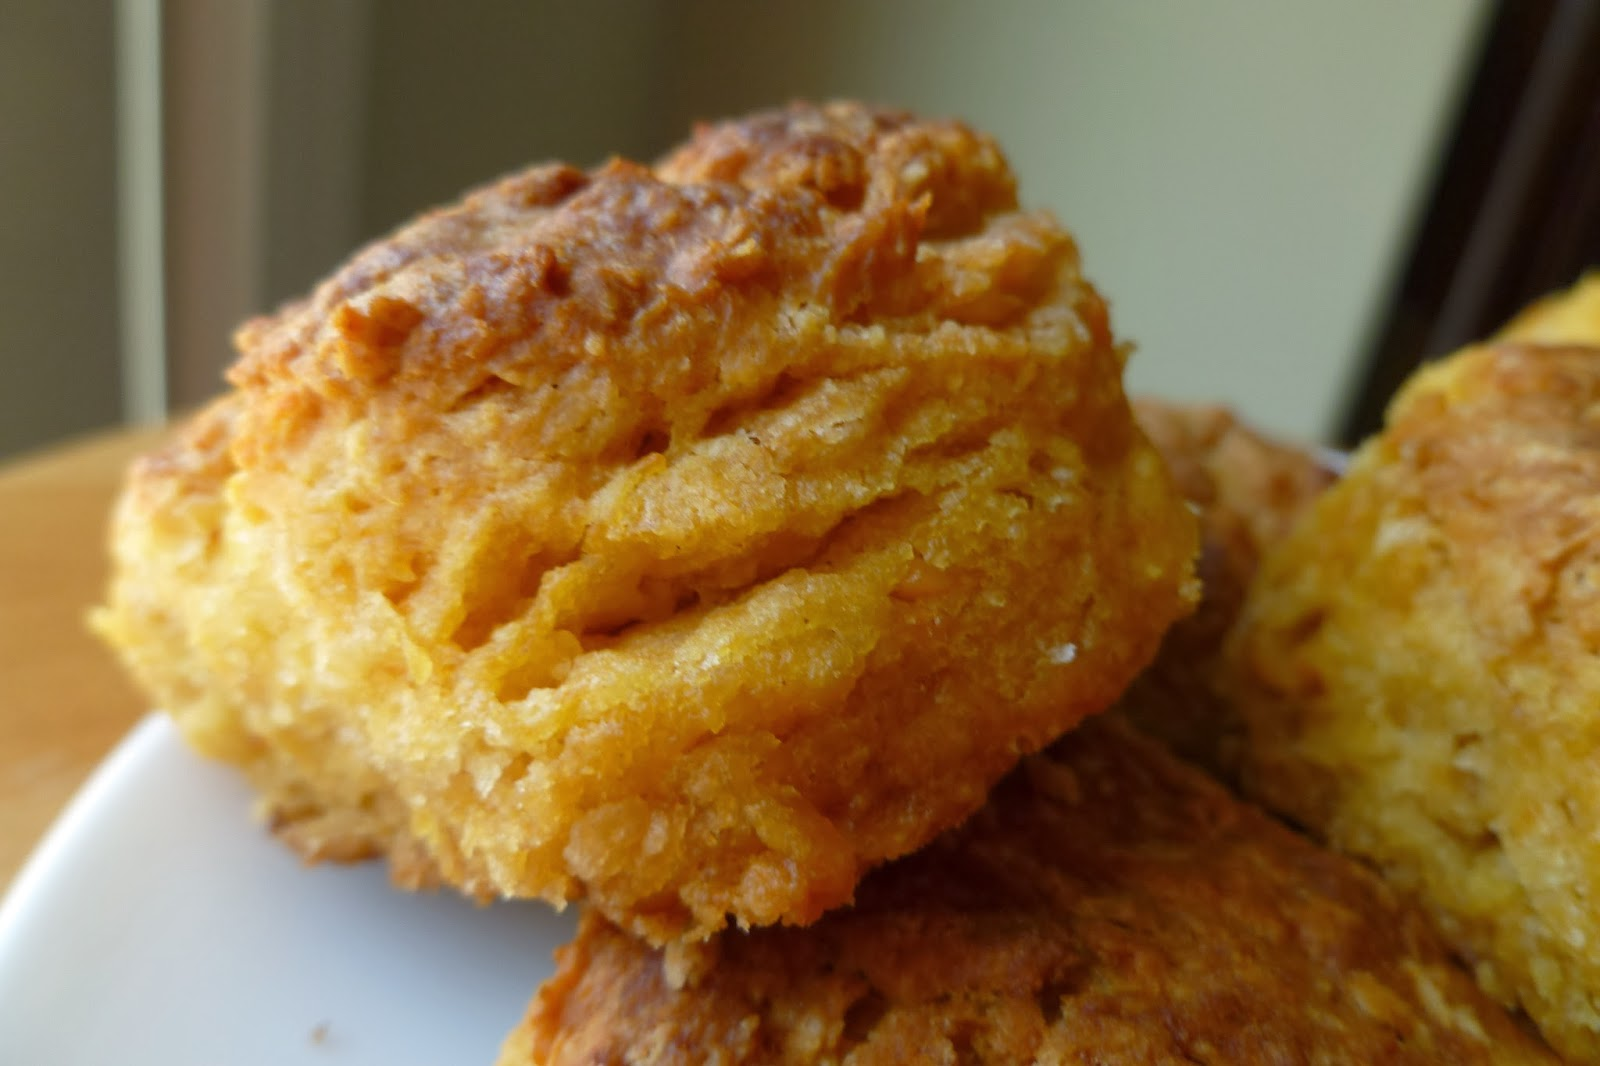 The Pastry Chef's Baking: Sweet Potato Biscuits